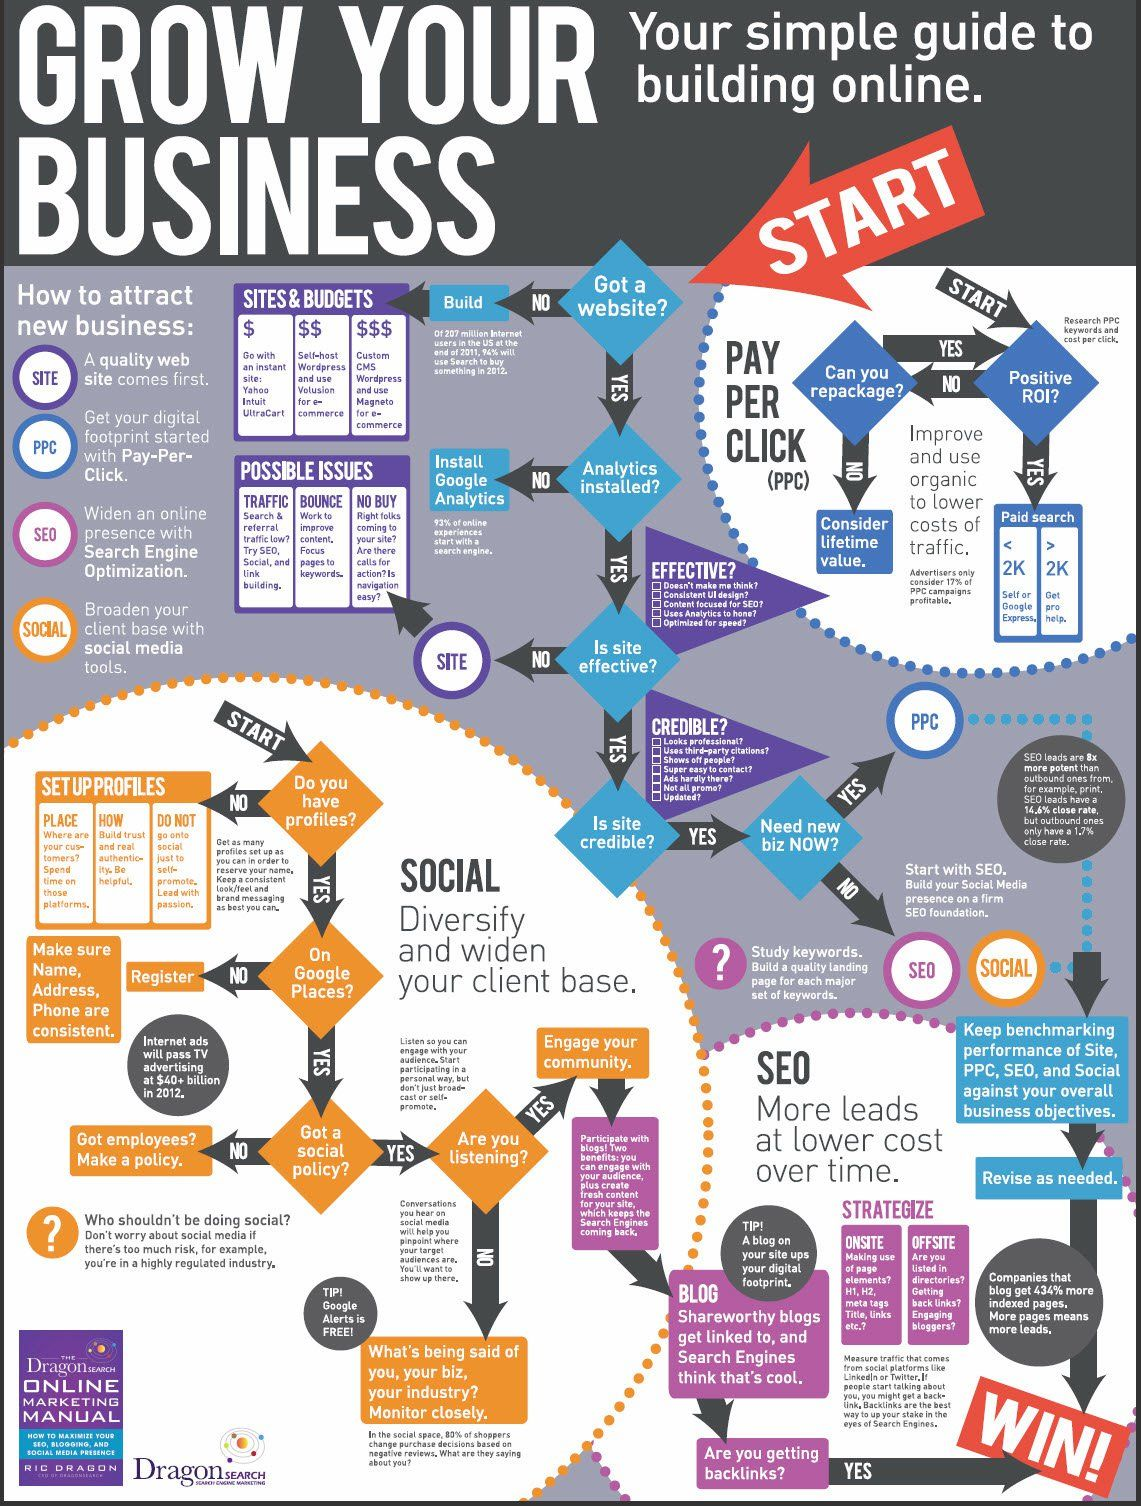 How to use social media to grow your business. You can also follow us on https://twitter.com/SmarthubGroup Mail us: contact@smarthubgroup.com